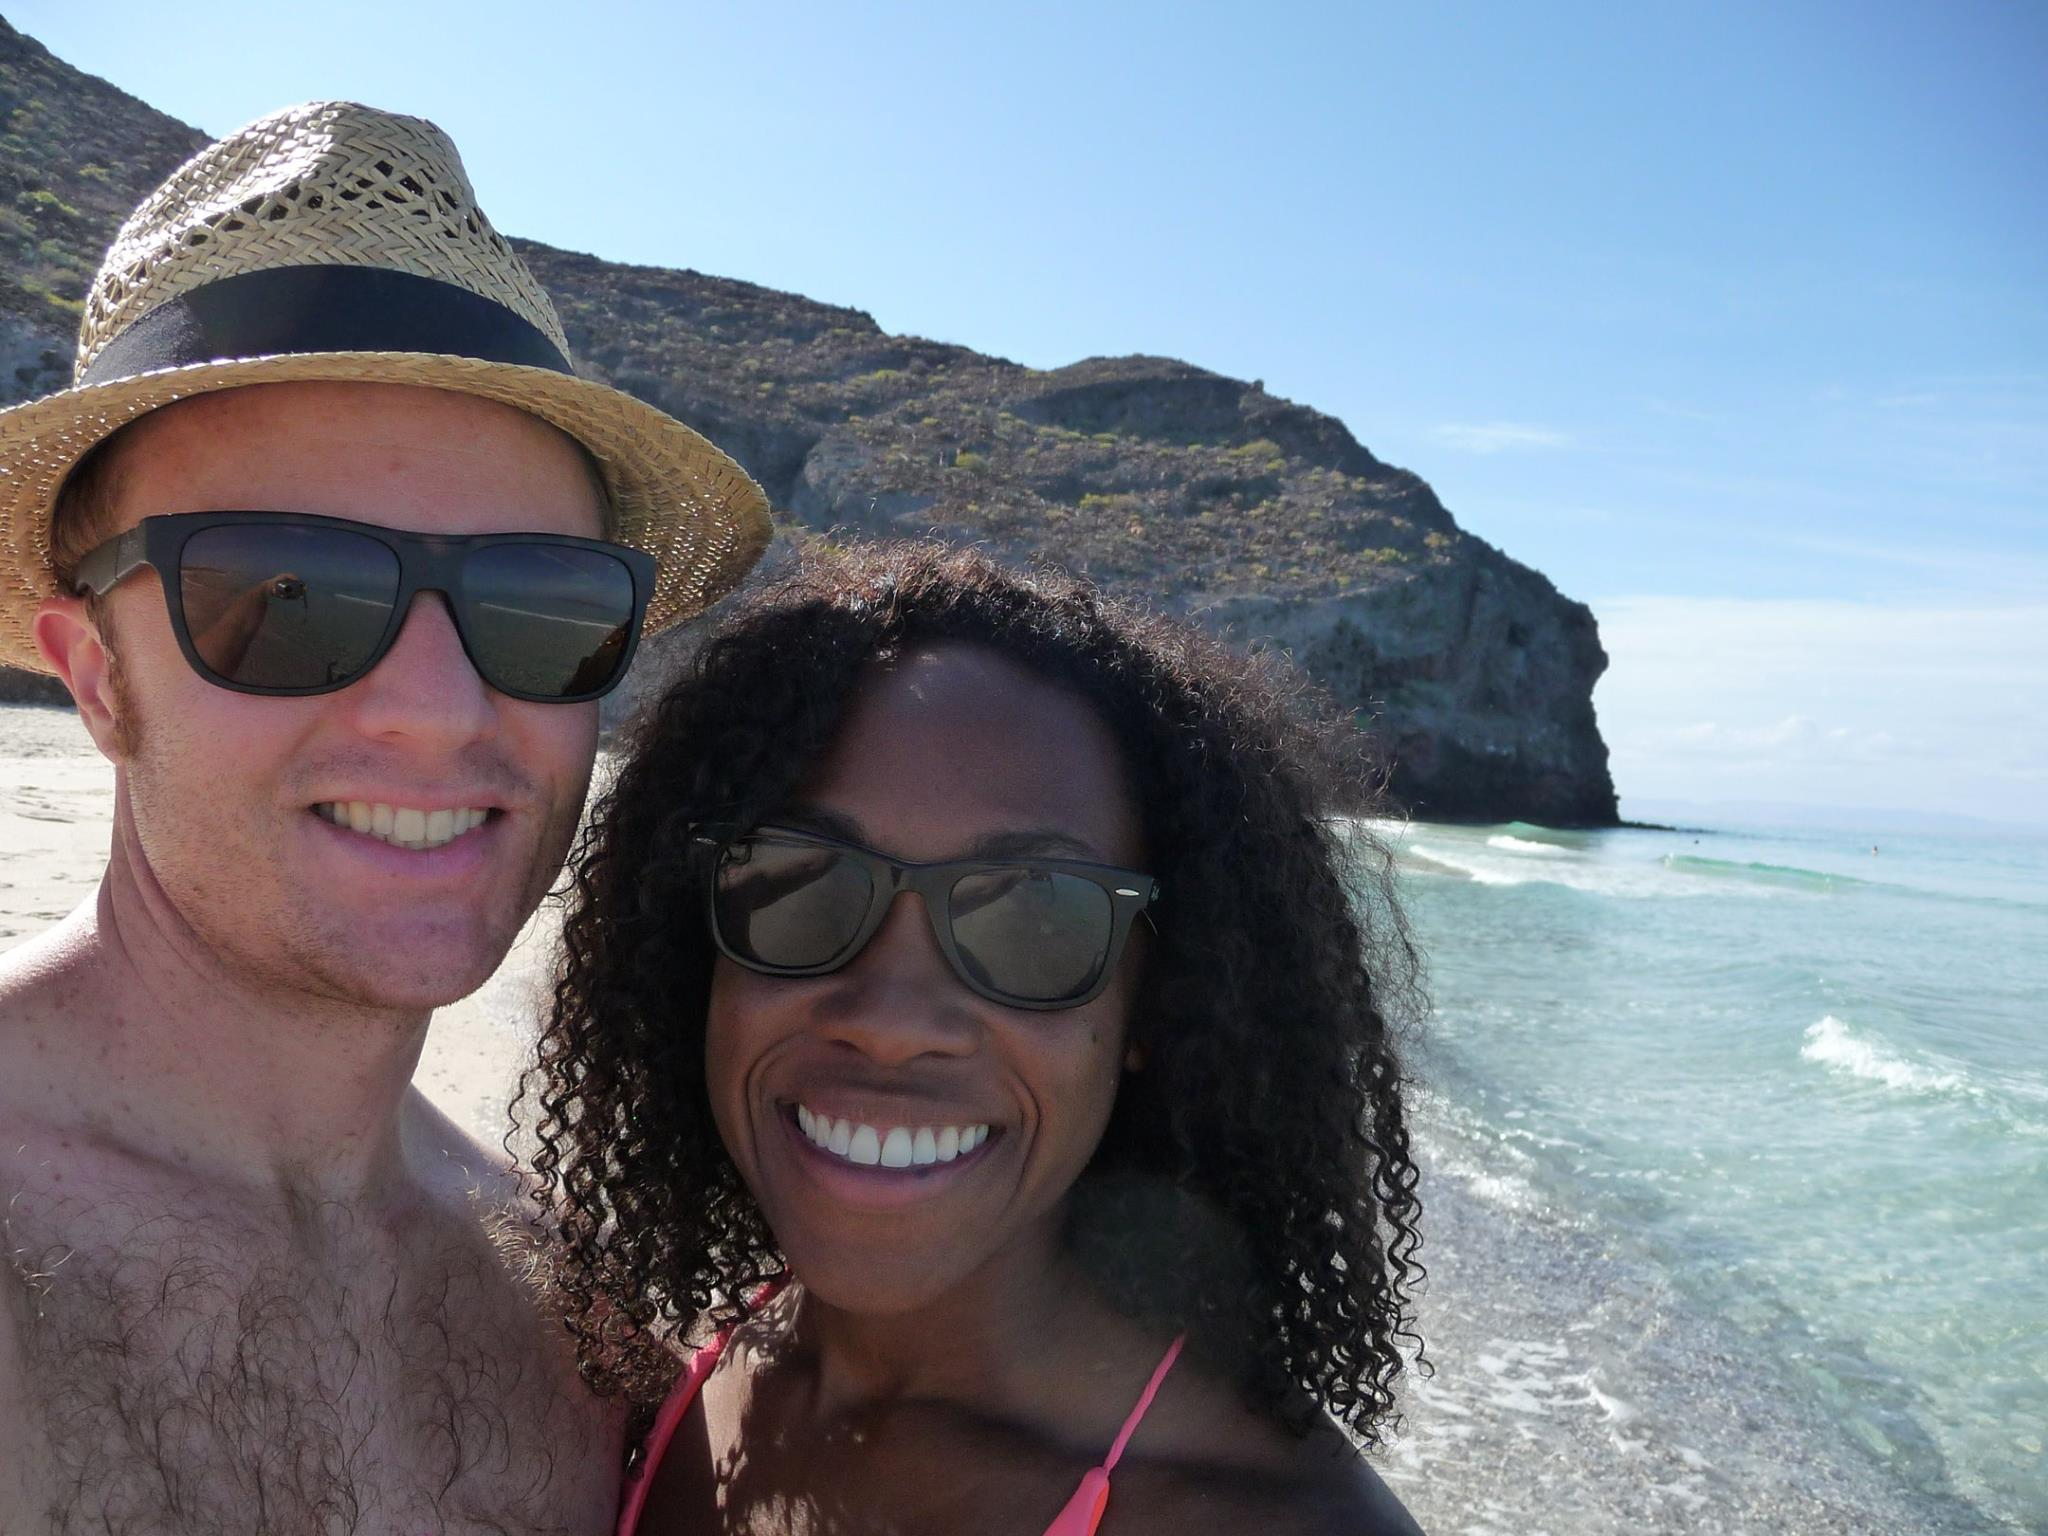 Me and Nick on vacation in La Paz, Mexico.